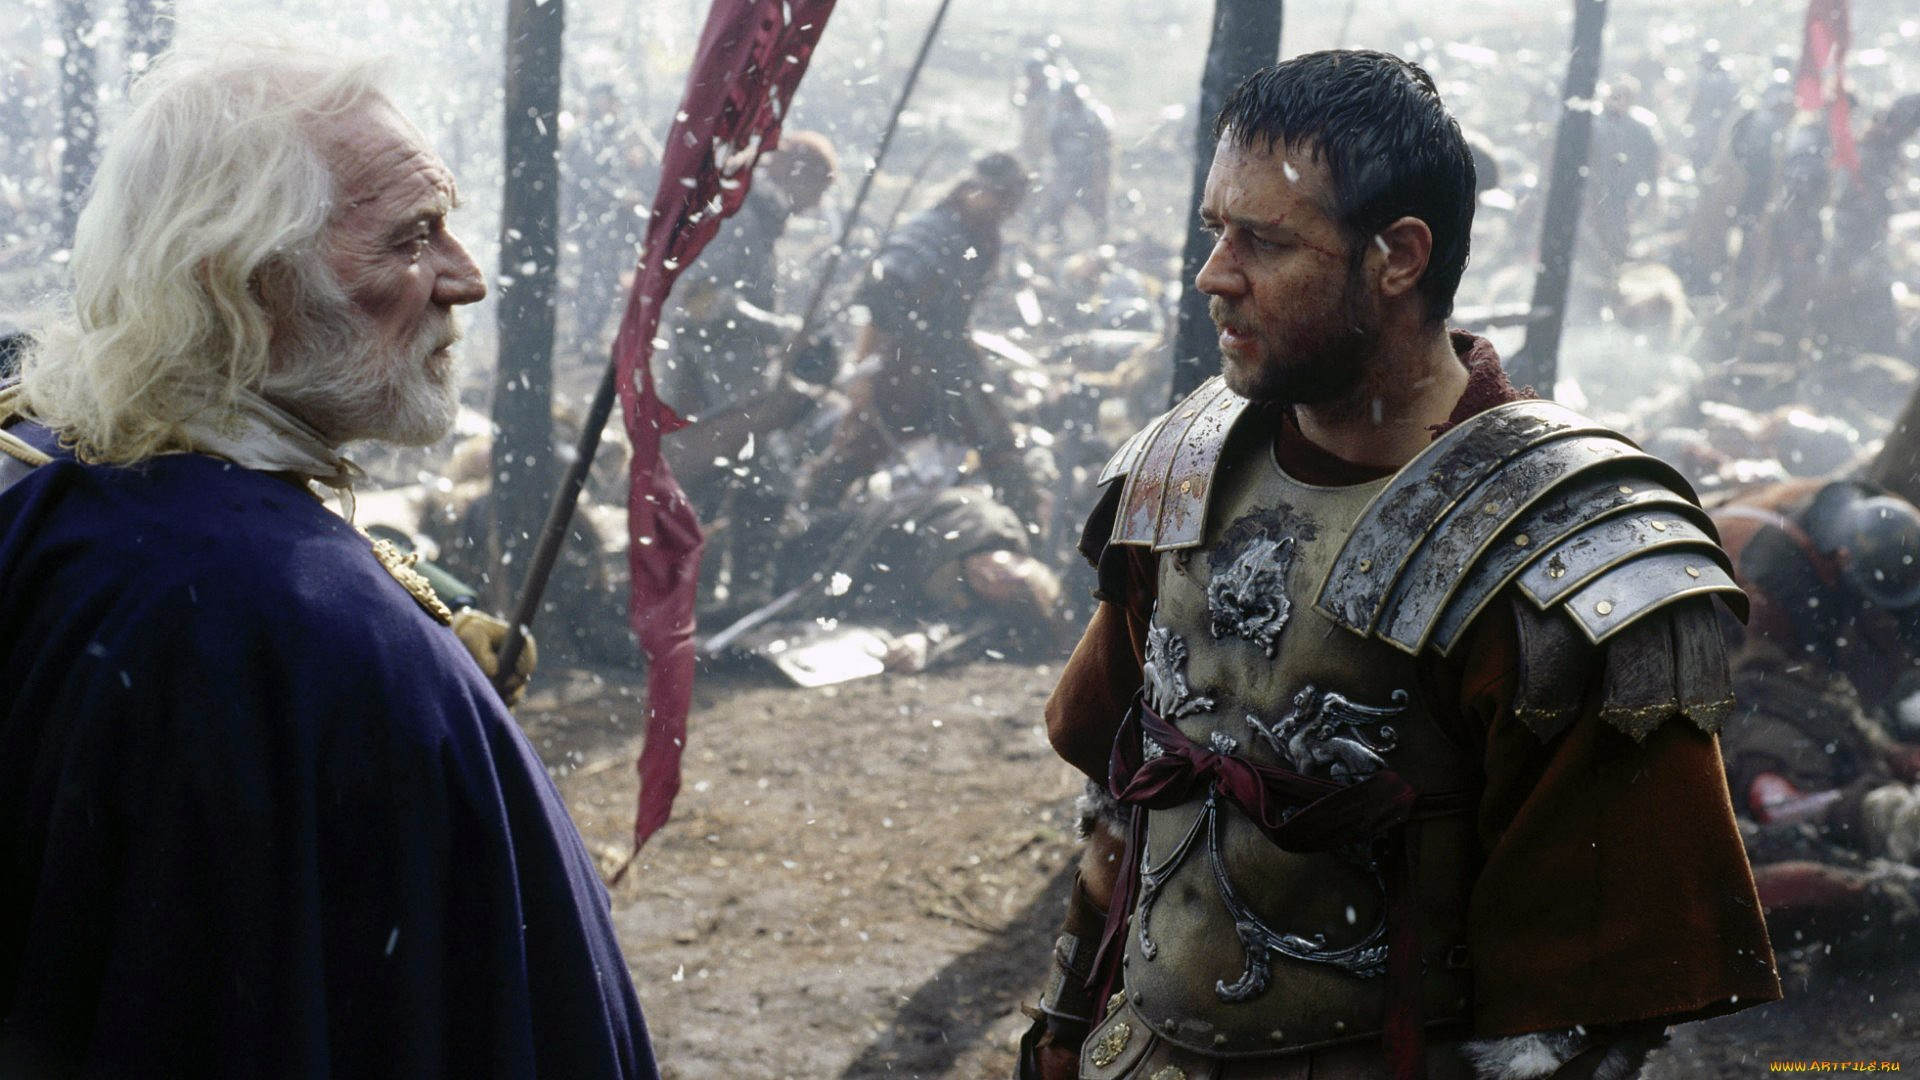 Movies Gladiator Movie Russell Crowe 1439x1403 Wallpaper: Gladiator Full HD Wallpaper And Background Image